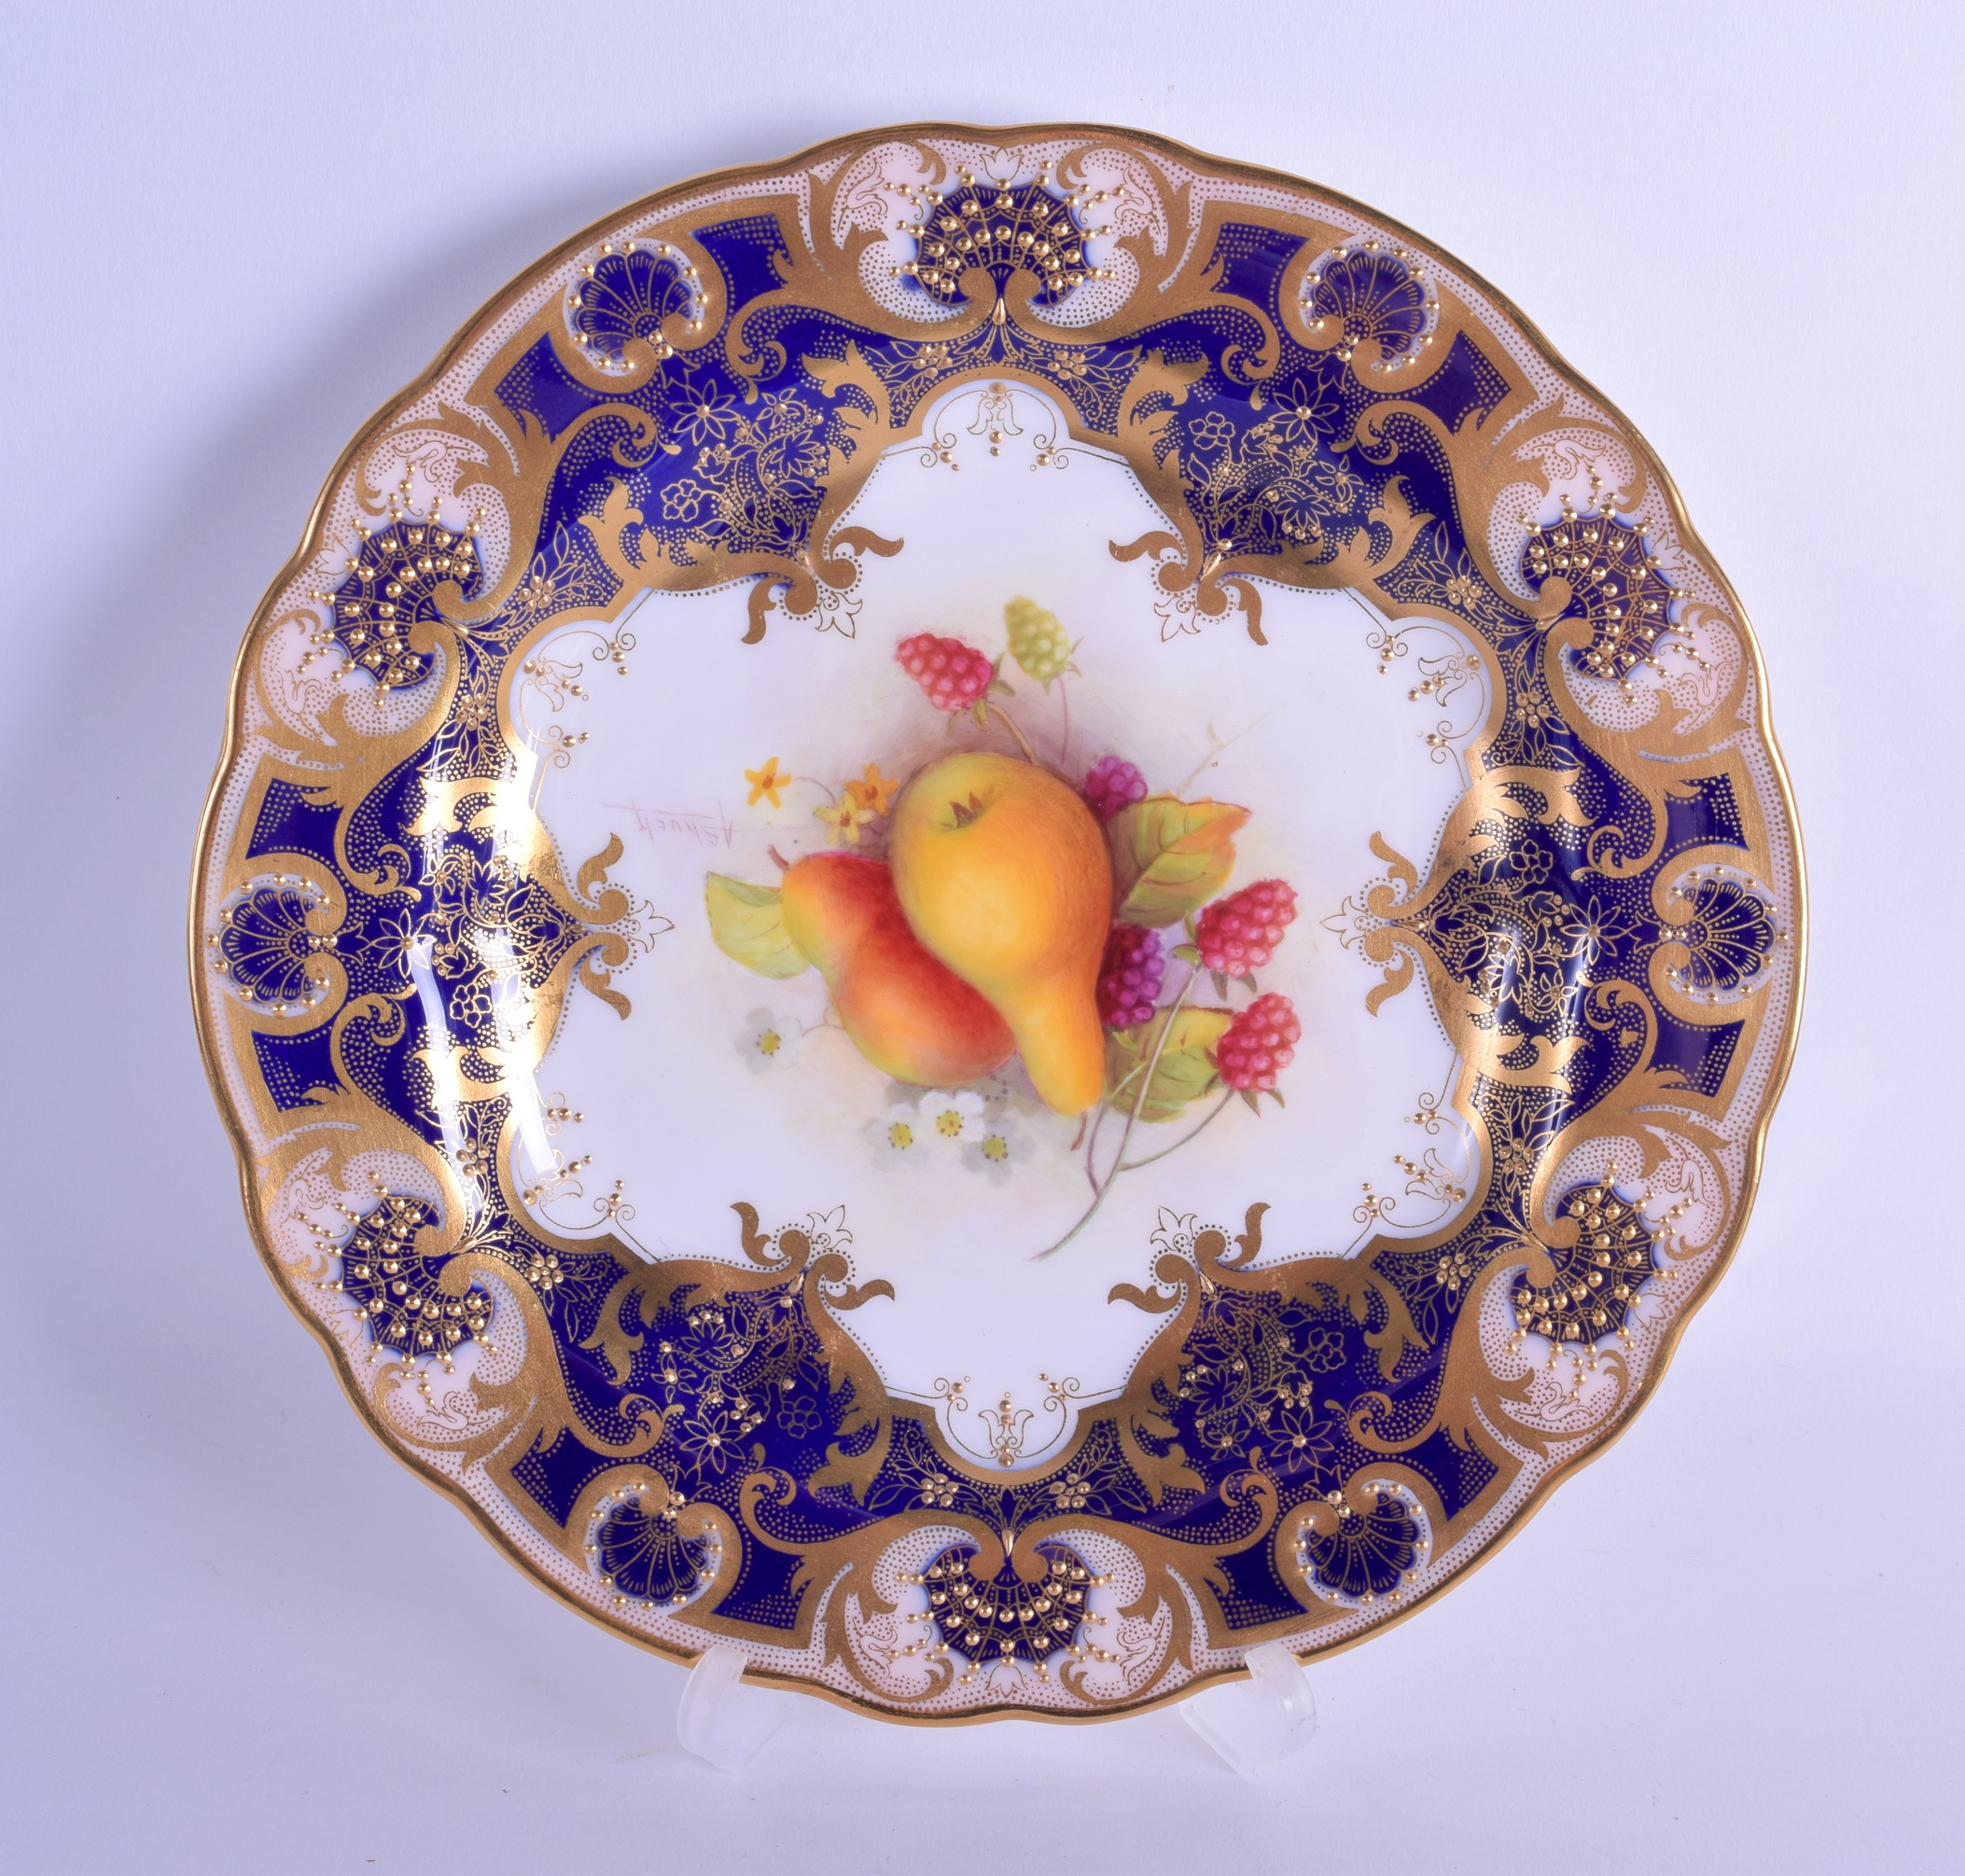 Lot 159 - Royal Worcester plate painted with fruit under a blue and gilt border by Albert Shuck, signed date